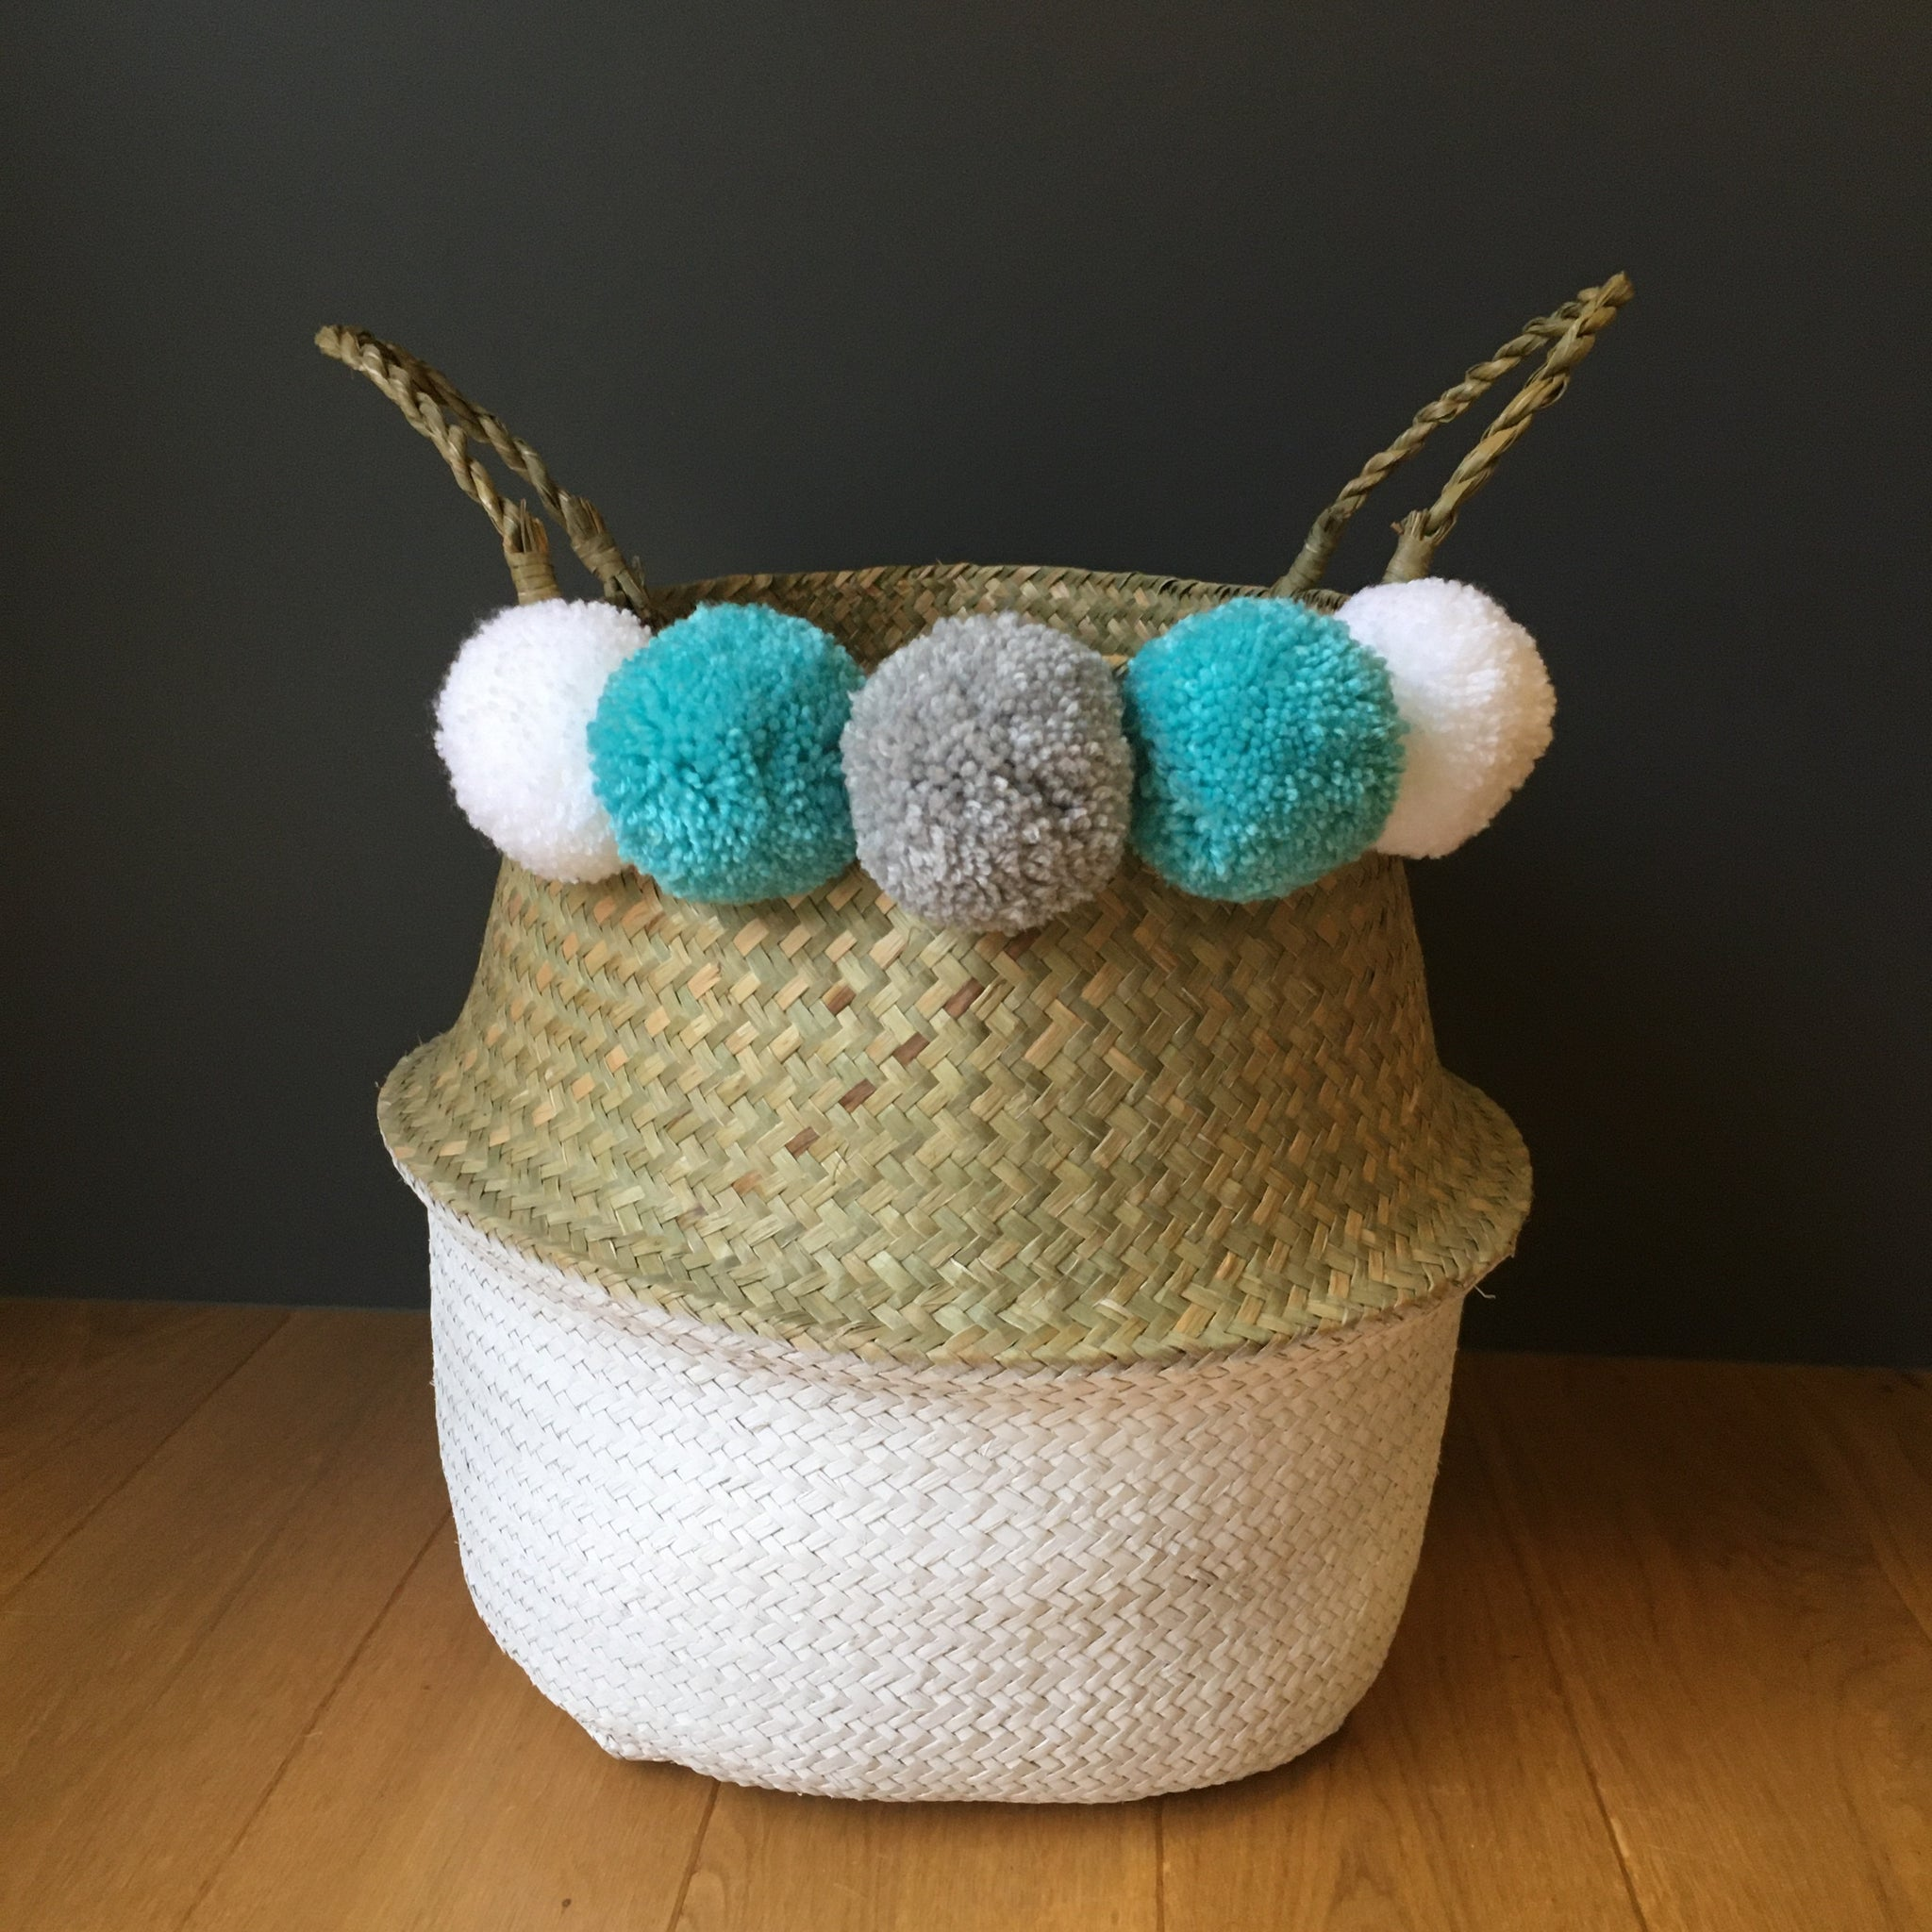 Large Pom Pom Belly Basket with White Bottom